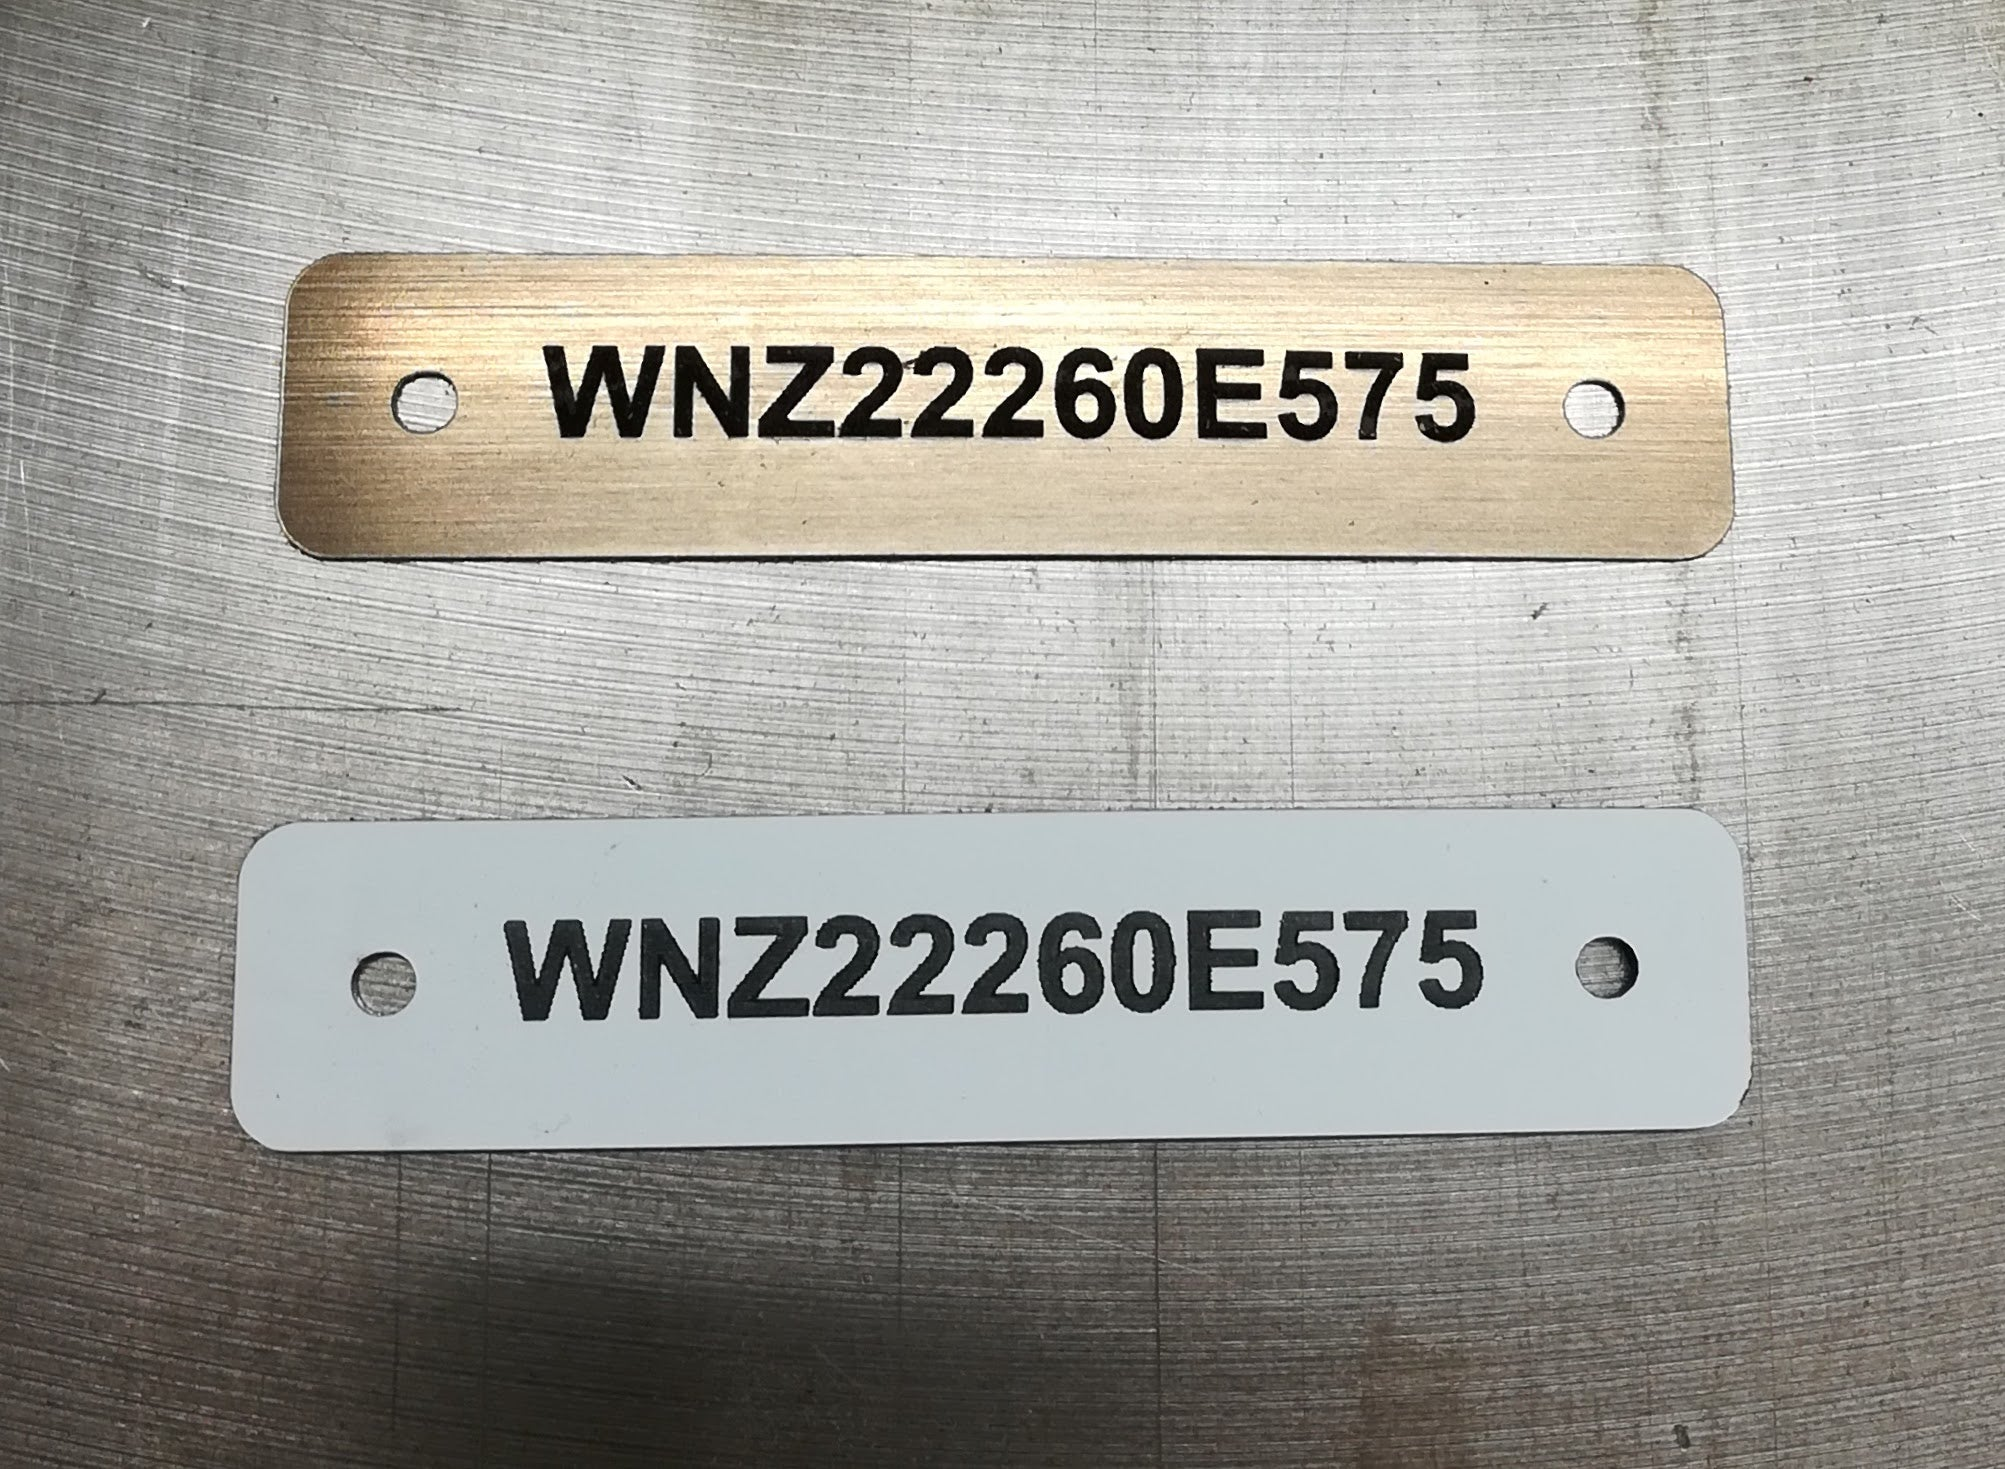 Hull Identification Numbers - 2